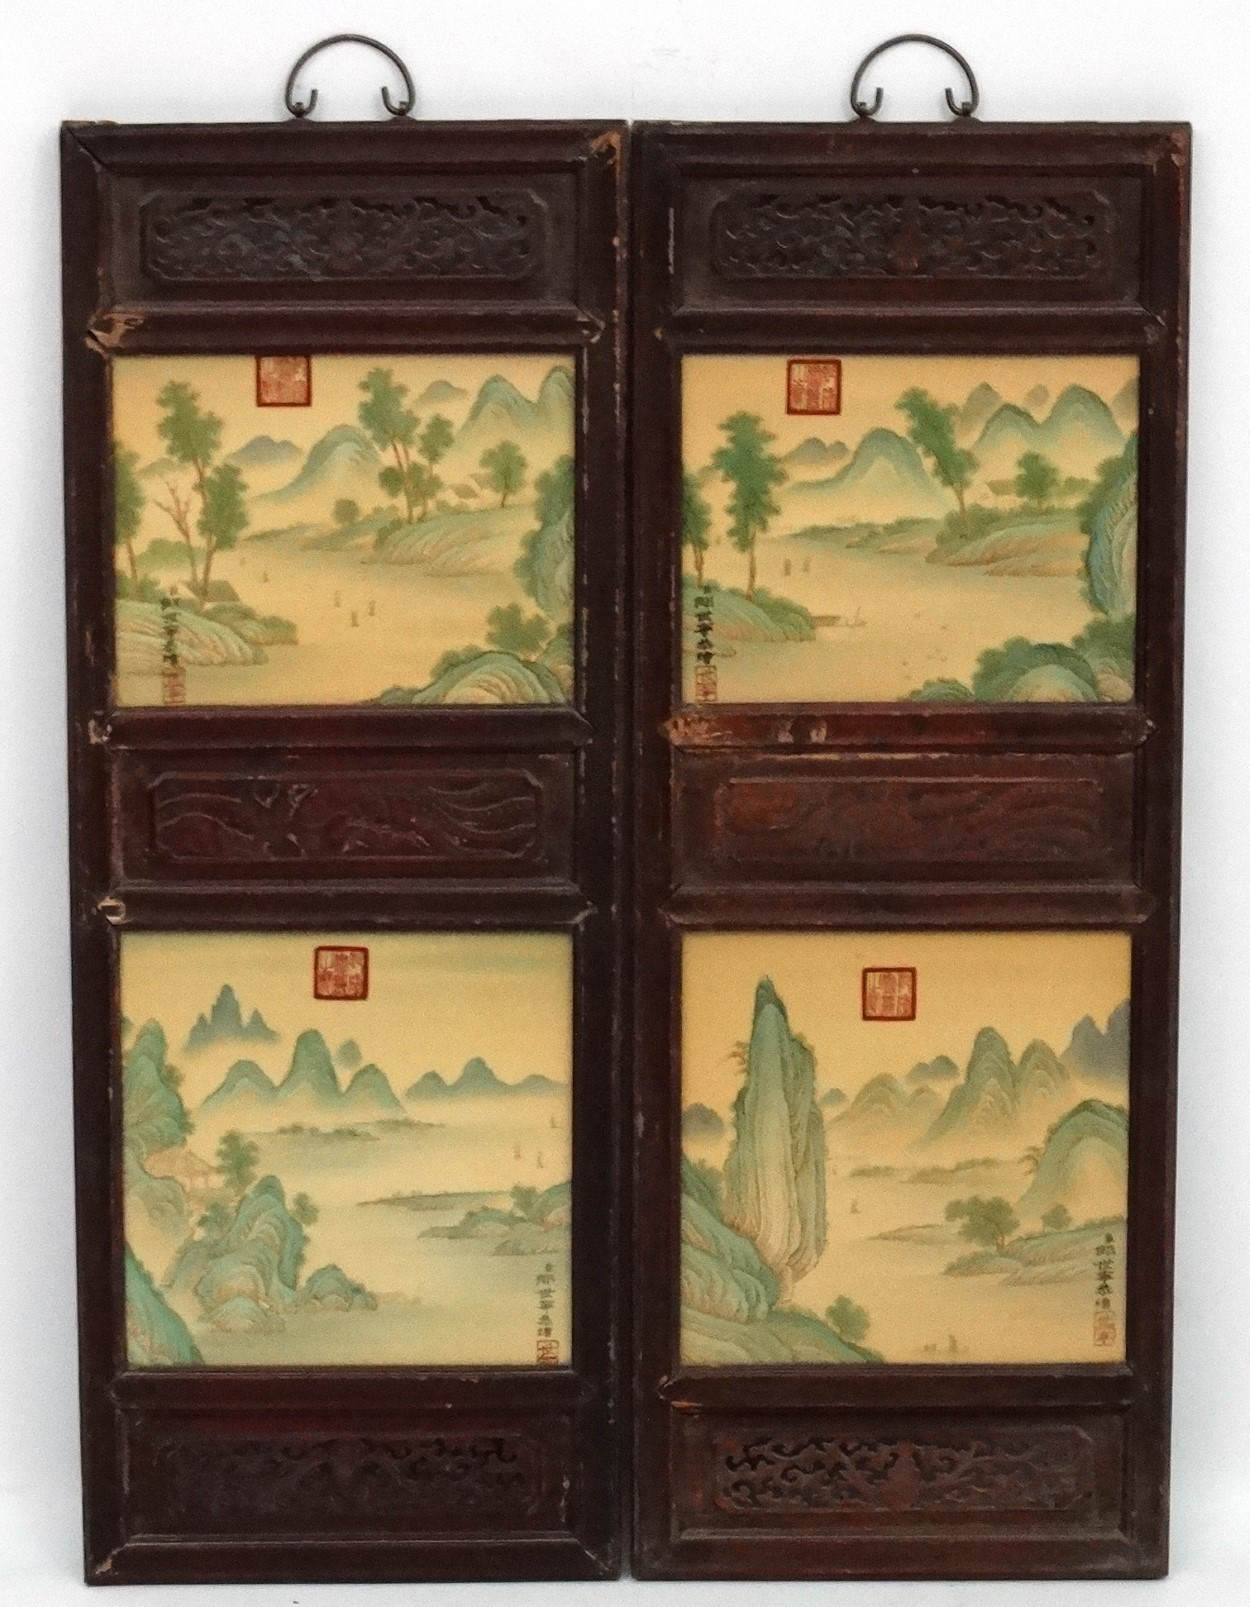 Lot 48 - A large pair of Chinese ceramic panels in wooden frames,